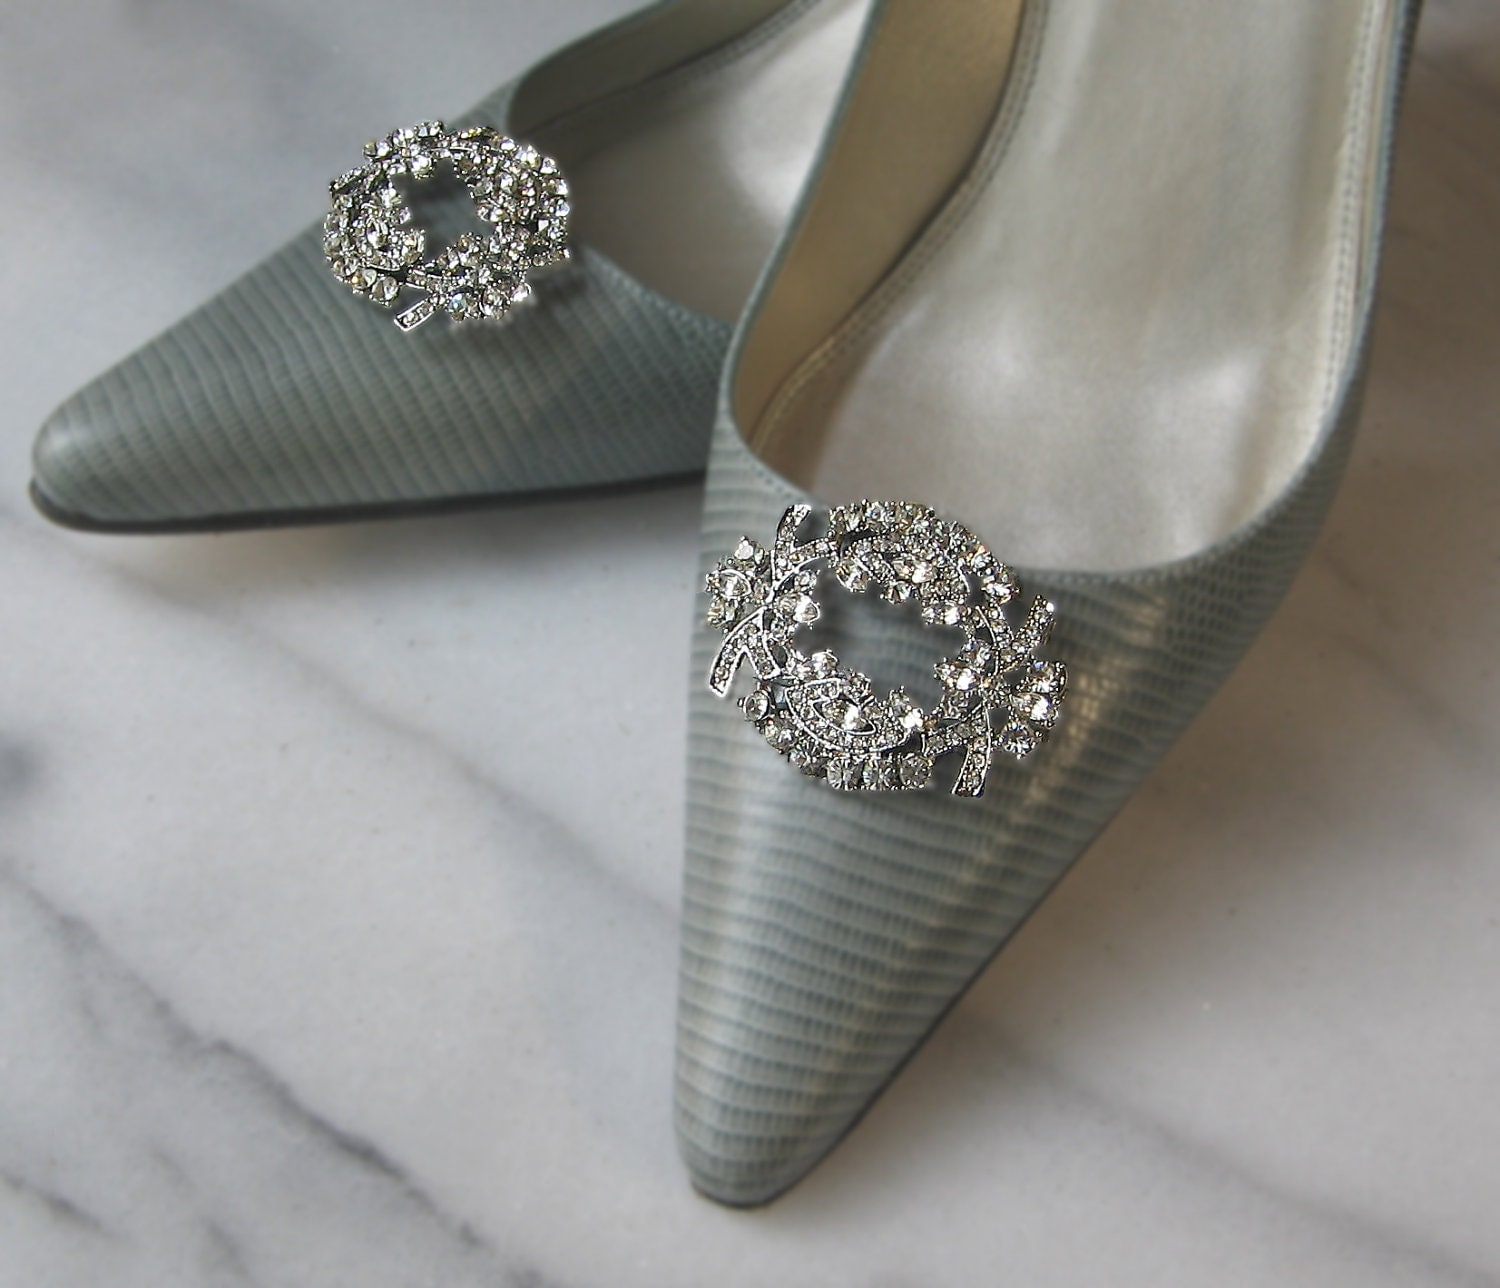 Award winning shoe clips and shoe jewels for your shoes. Largest shoe clip collection for evening, casual and bridal shoes. Attach them to sandals, boots, pumps, flip.